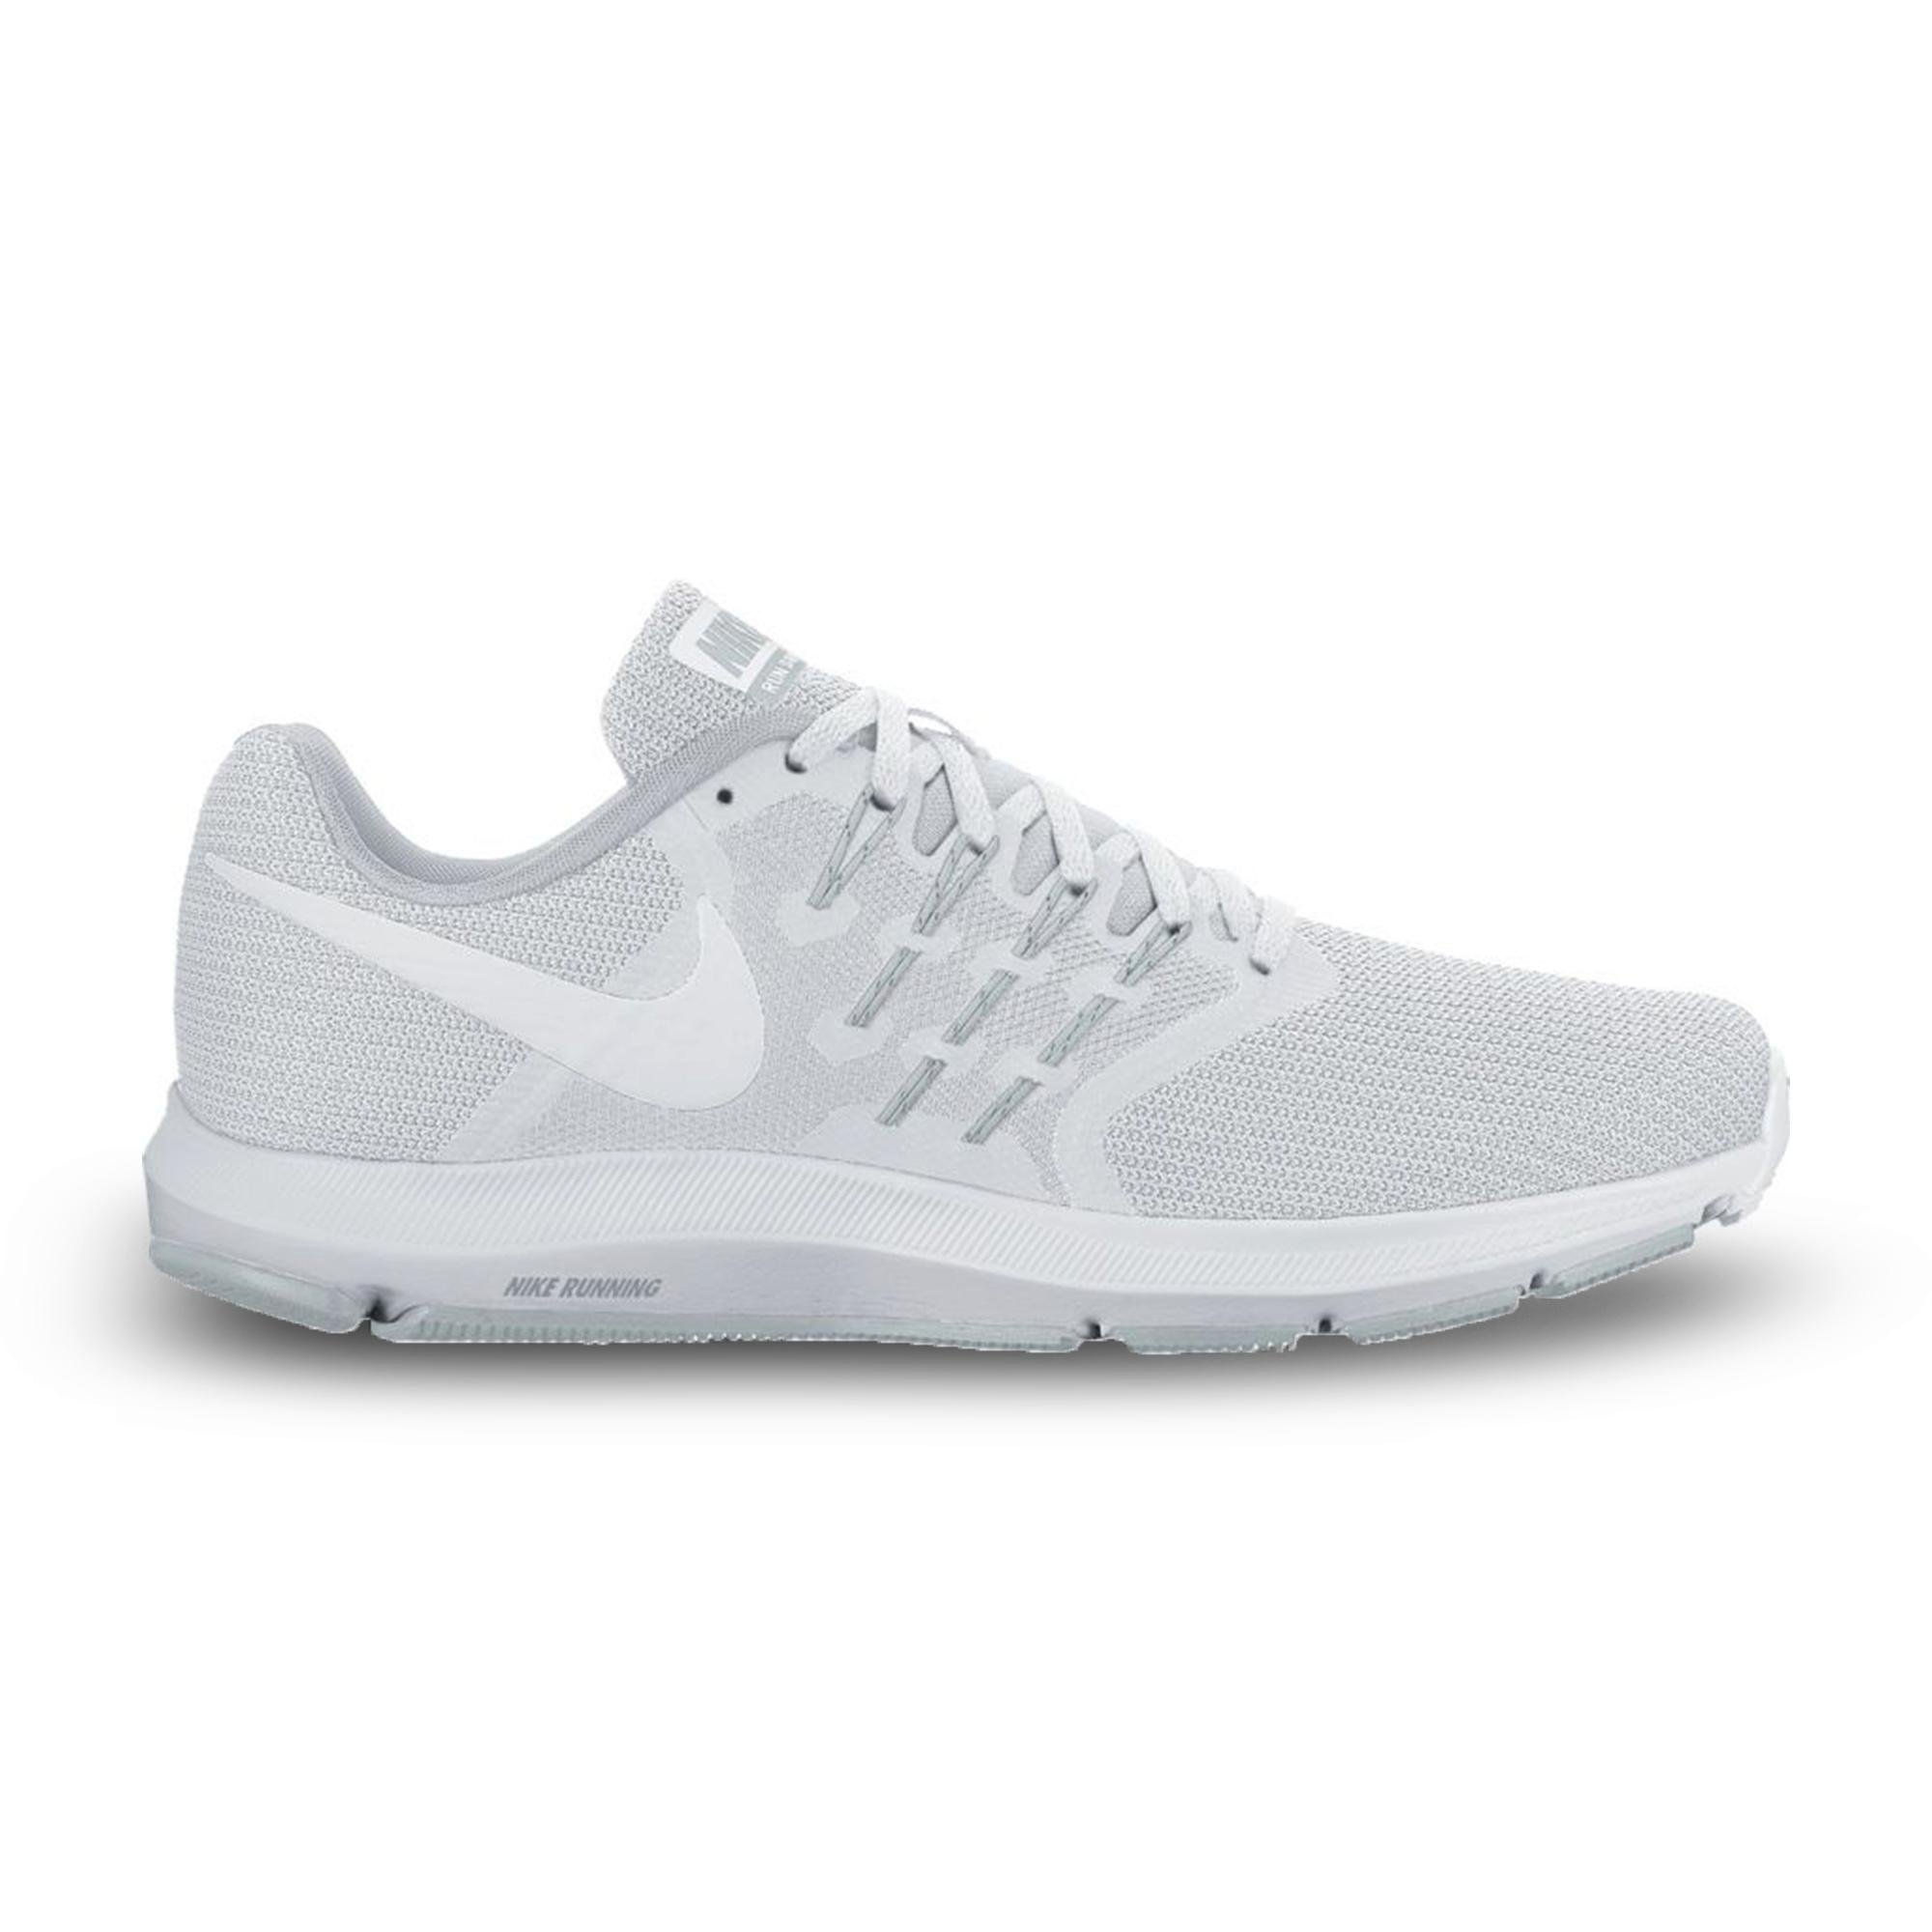 NIKE Womens Run Swift Low Top Lace Up, White/White-Pure Platinum, Size 7.5